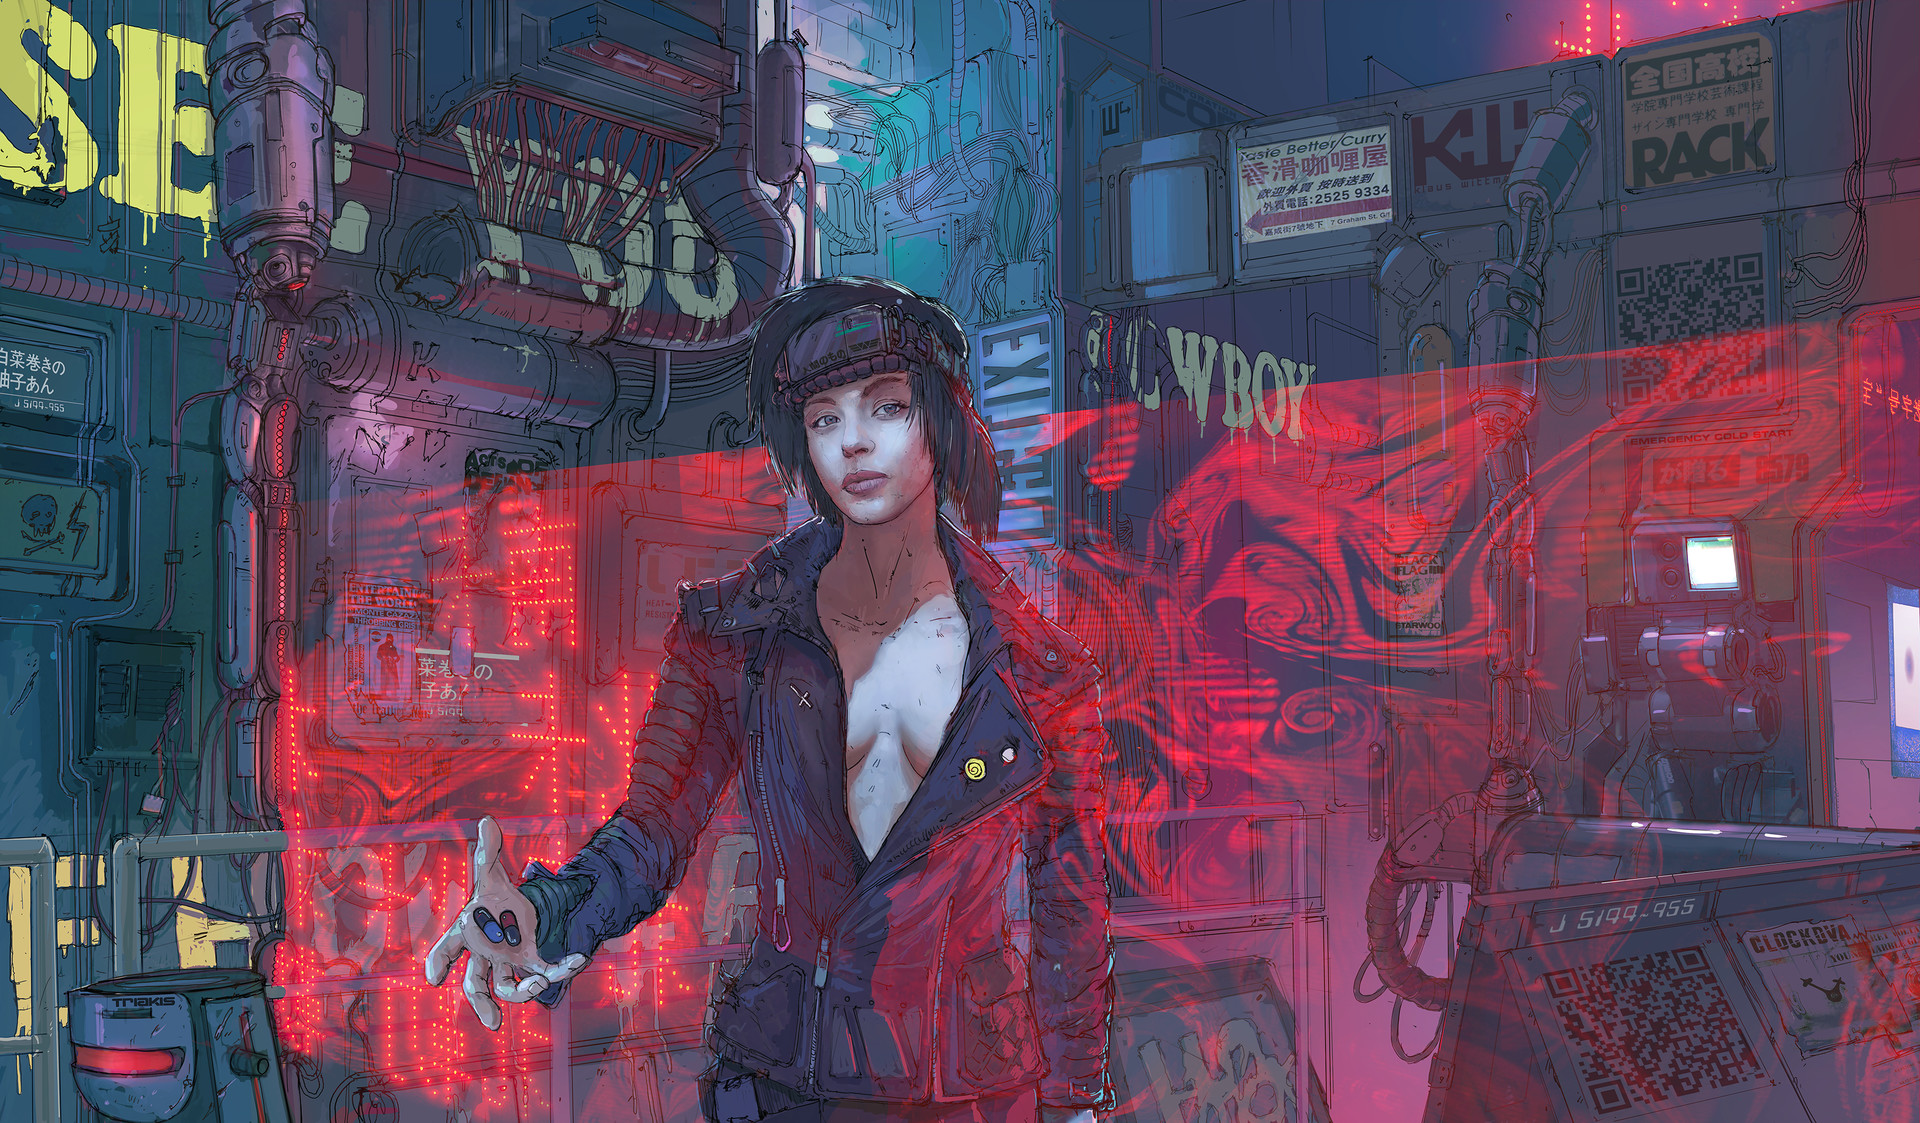 The Digital Artworks of Klaus Wittmann